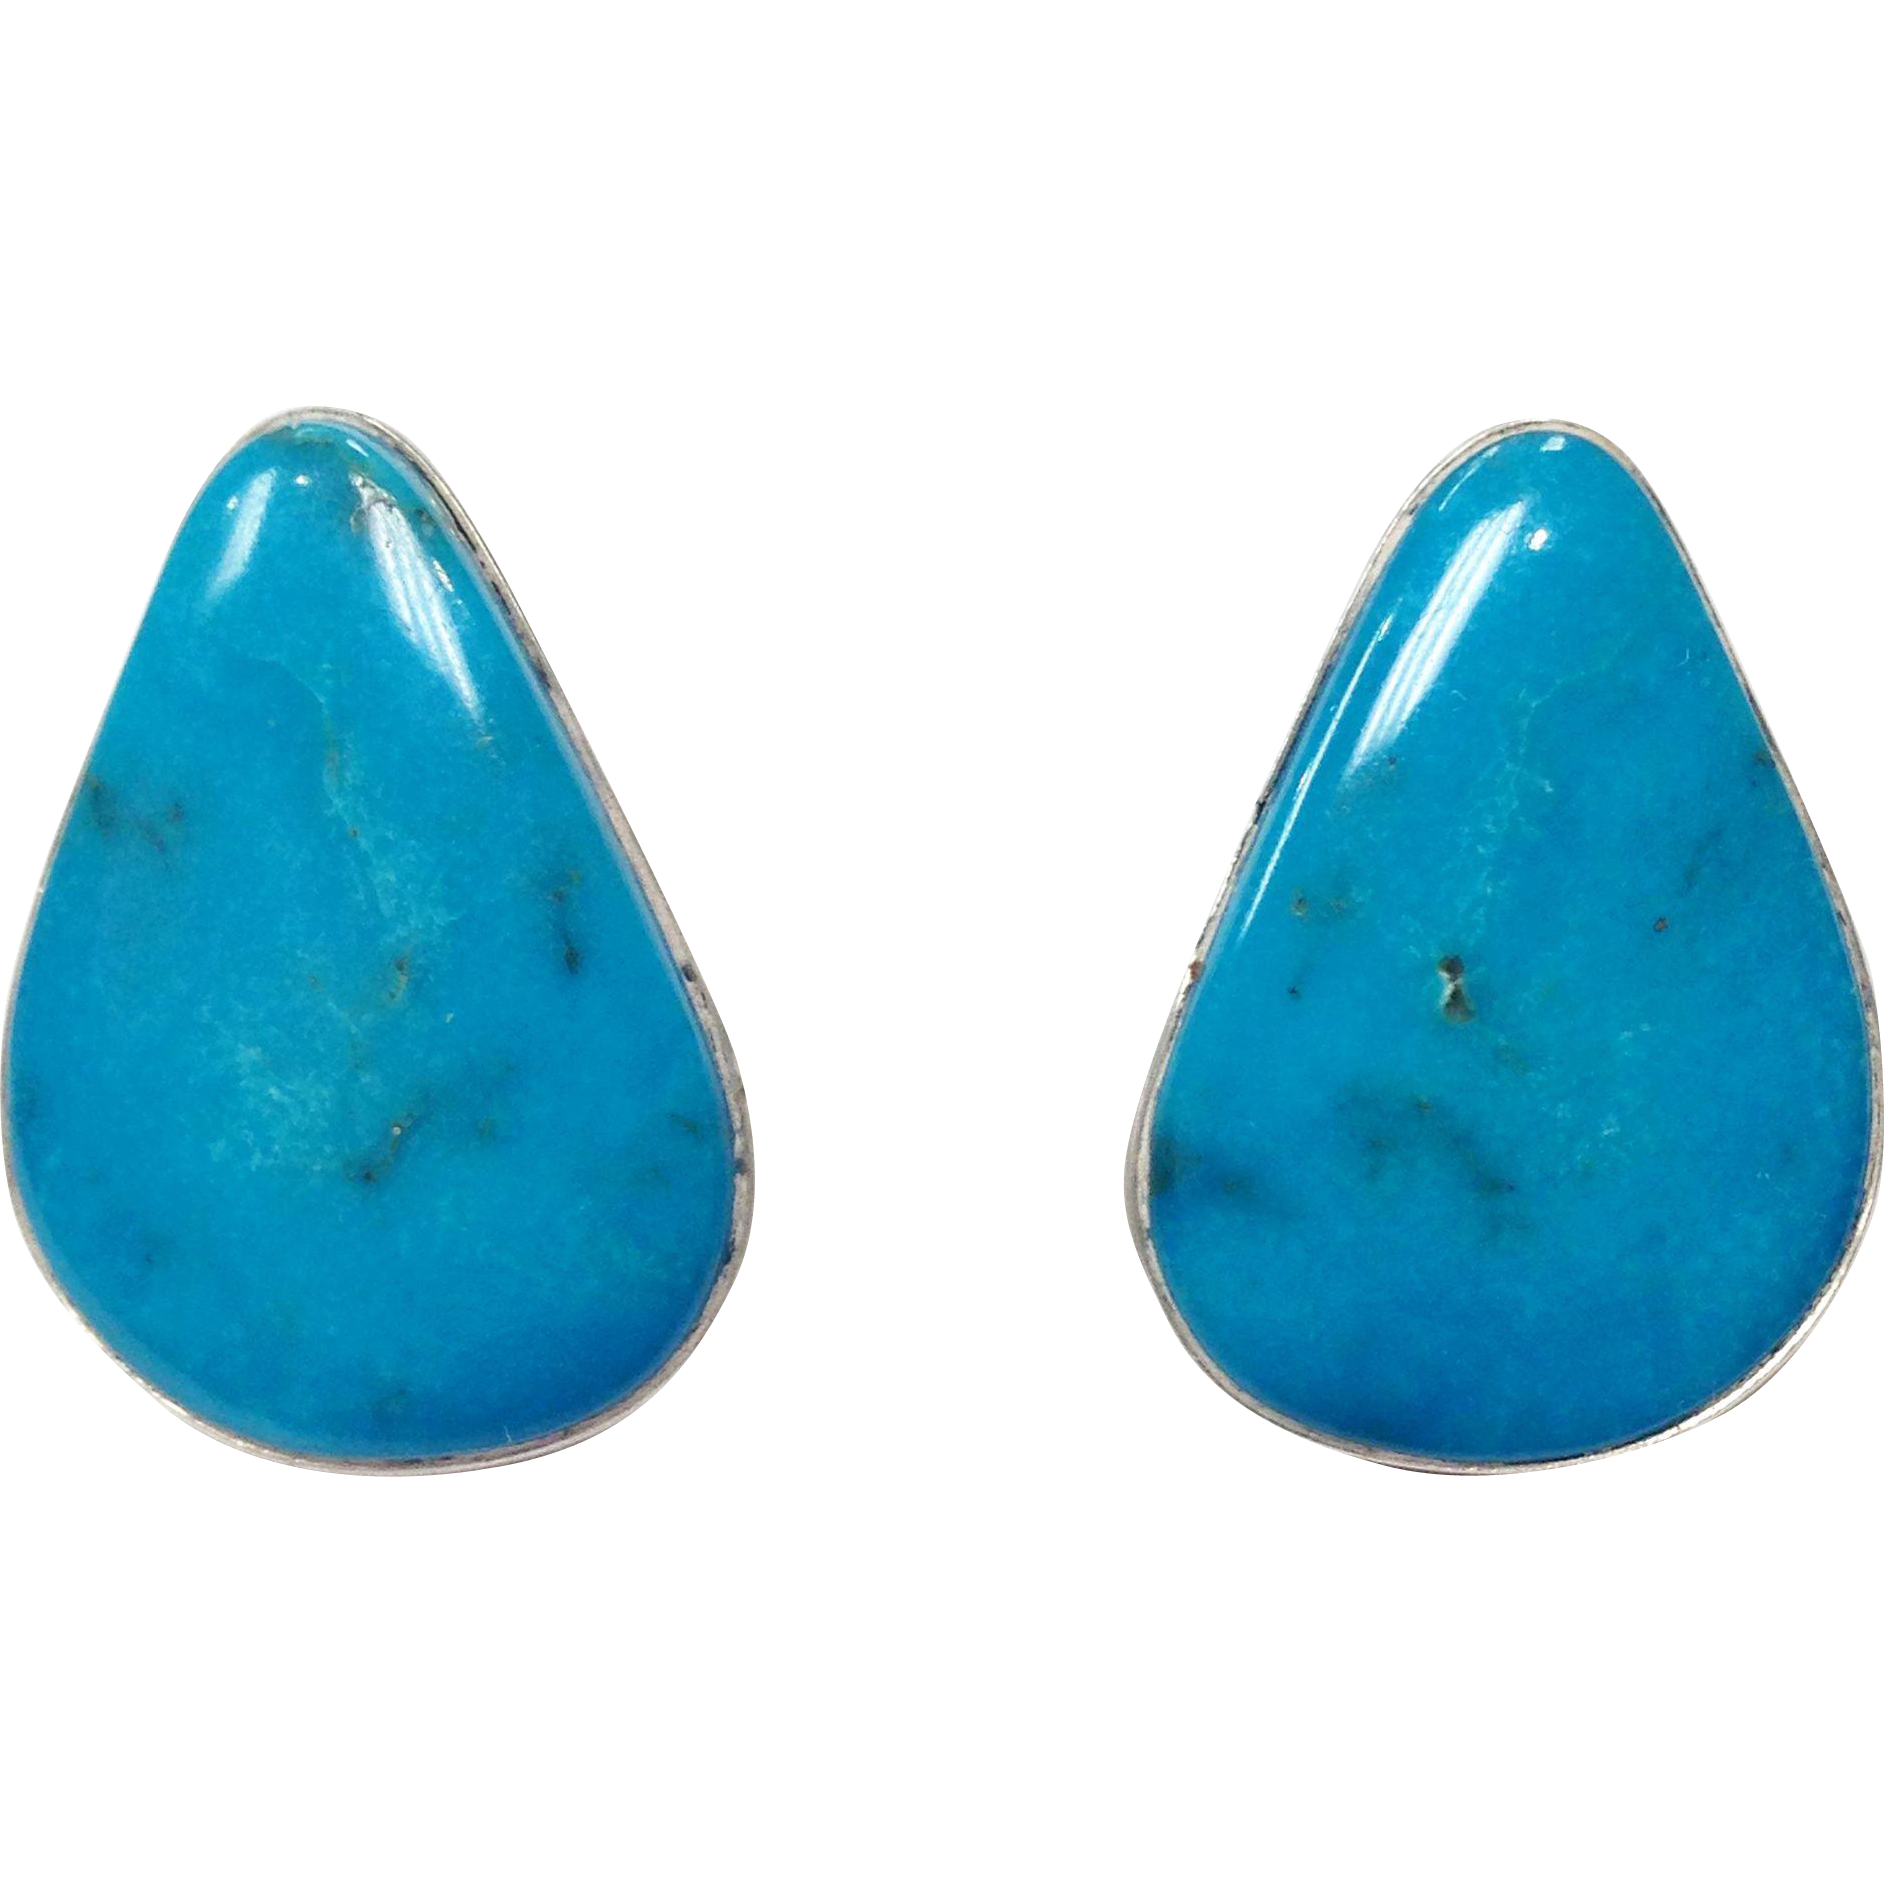 Vintage Beautiful Signed Teardrop Turquoise and Sterling Silver Pierced Earrings by Bernard Barton